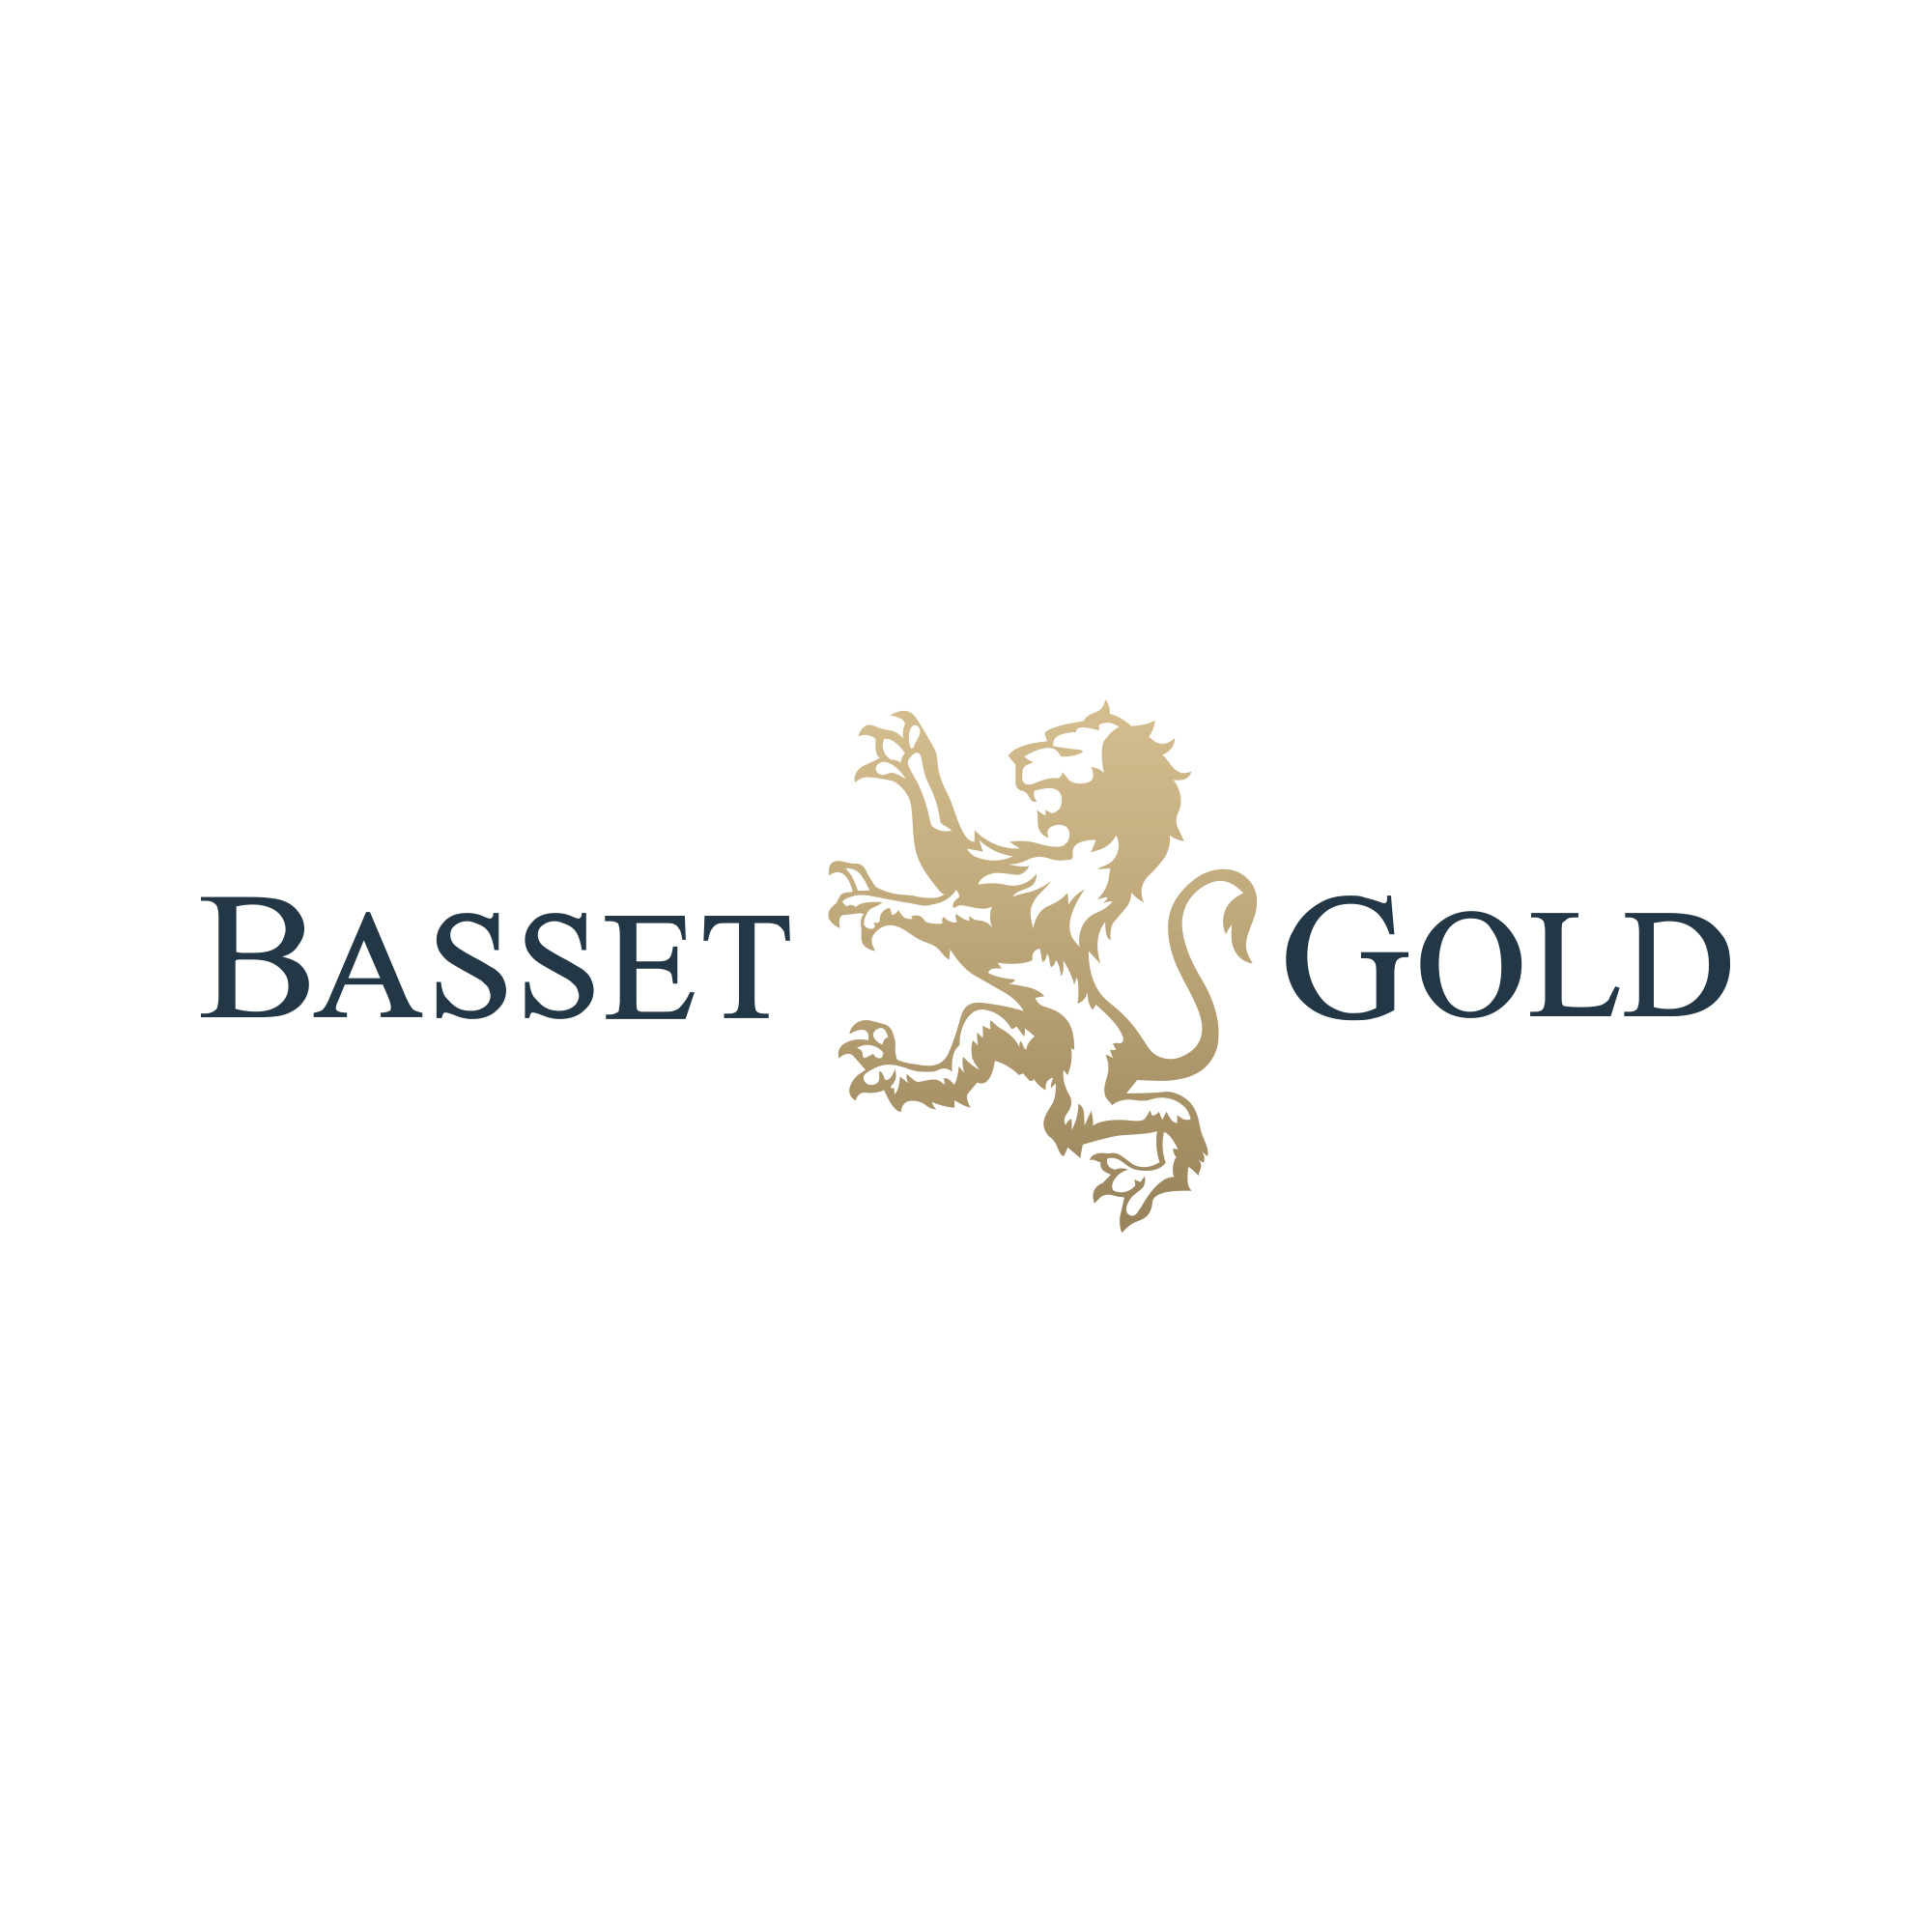 Basset & Gold, London, UK